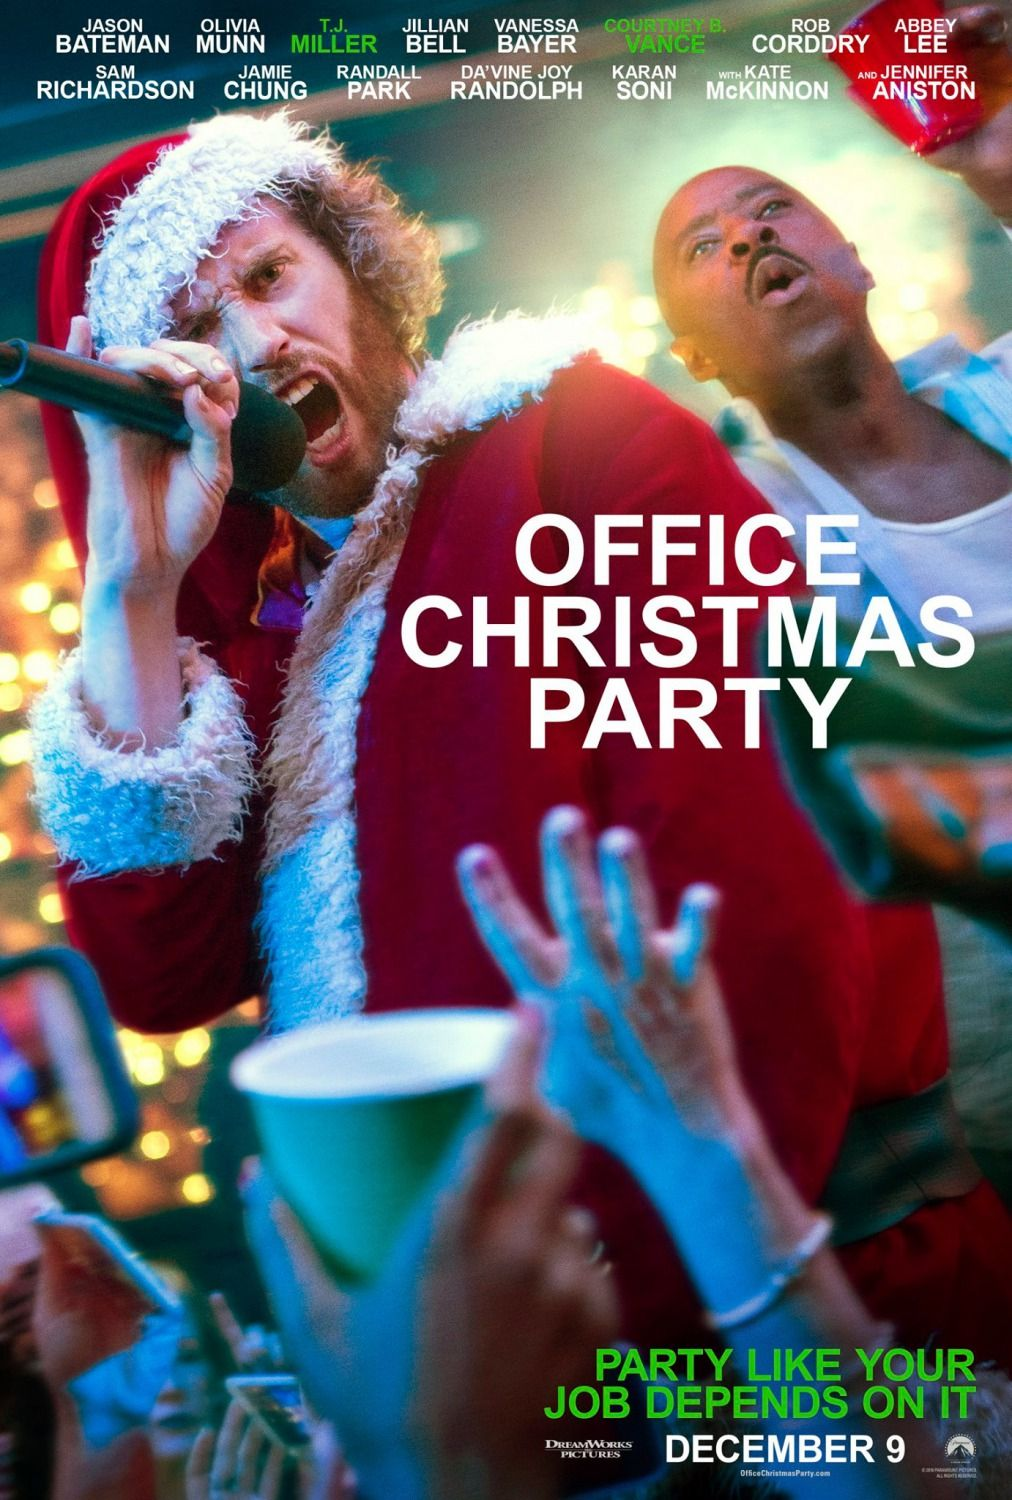 Office Christmas Party (2016) | Posters | Films (official ...